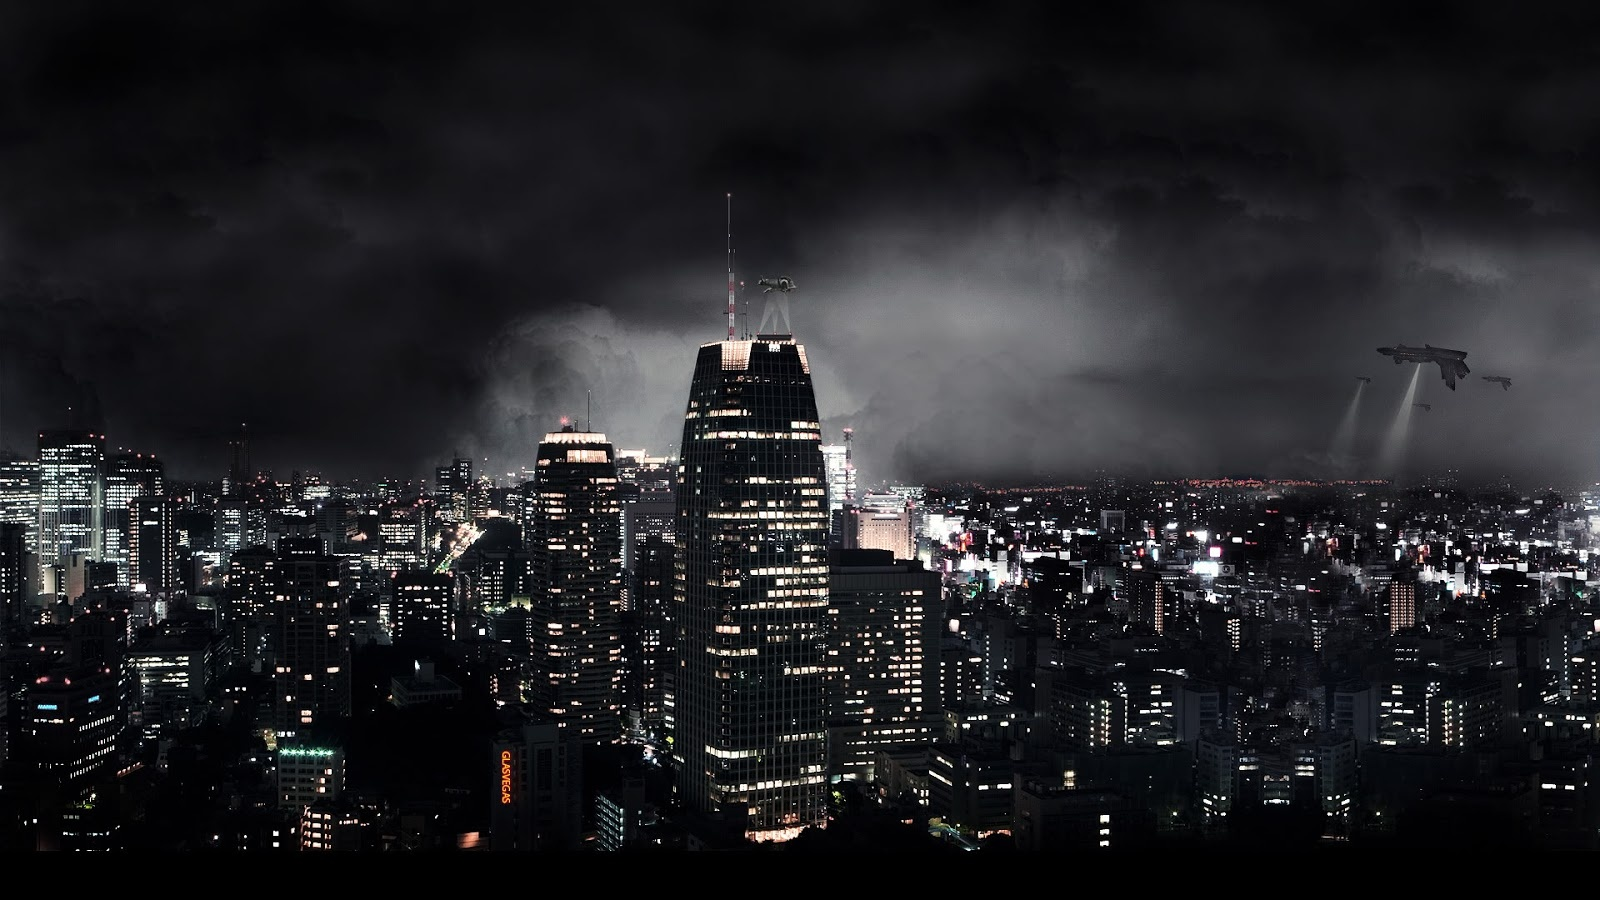 City Background Hd Download